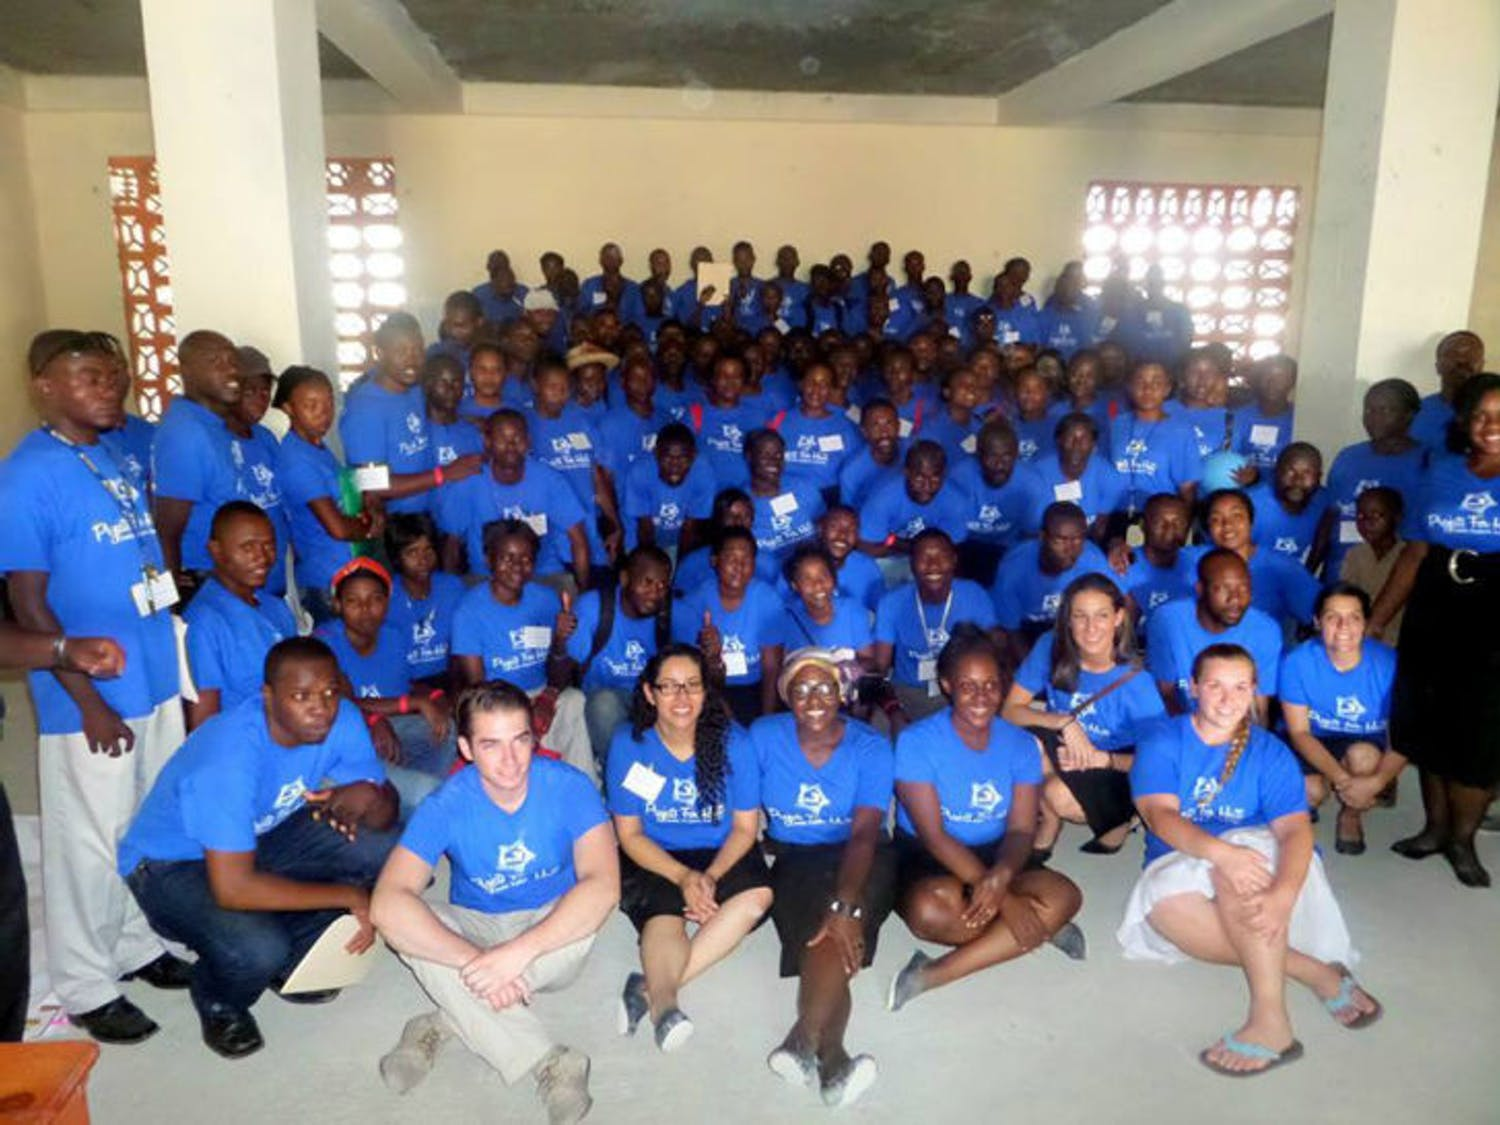 Pictured are 135 teachers from the conference held by Projects for Haiti. The event helps them network and improve teaching skills through workshops and training exercises.